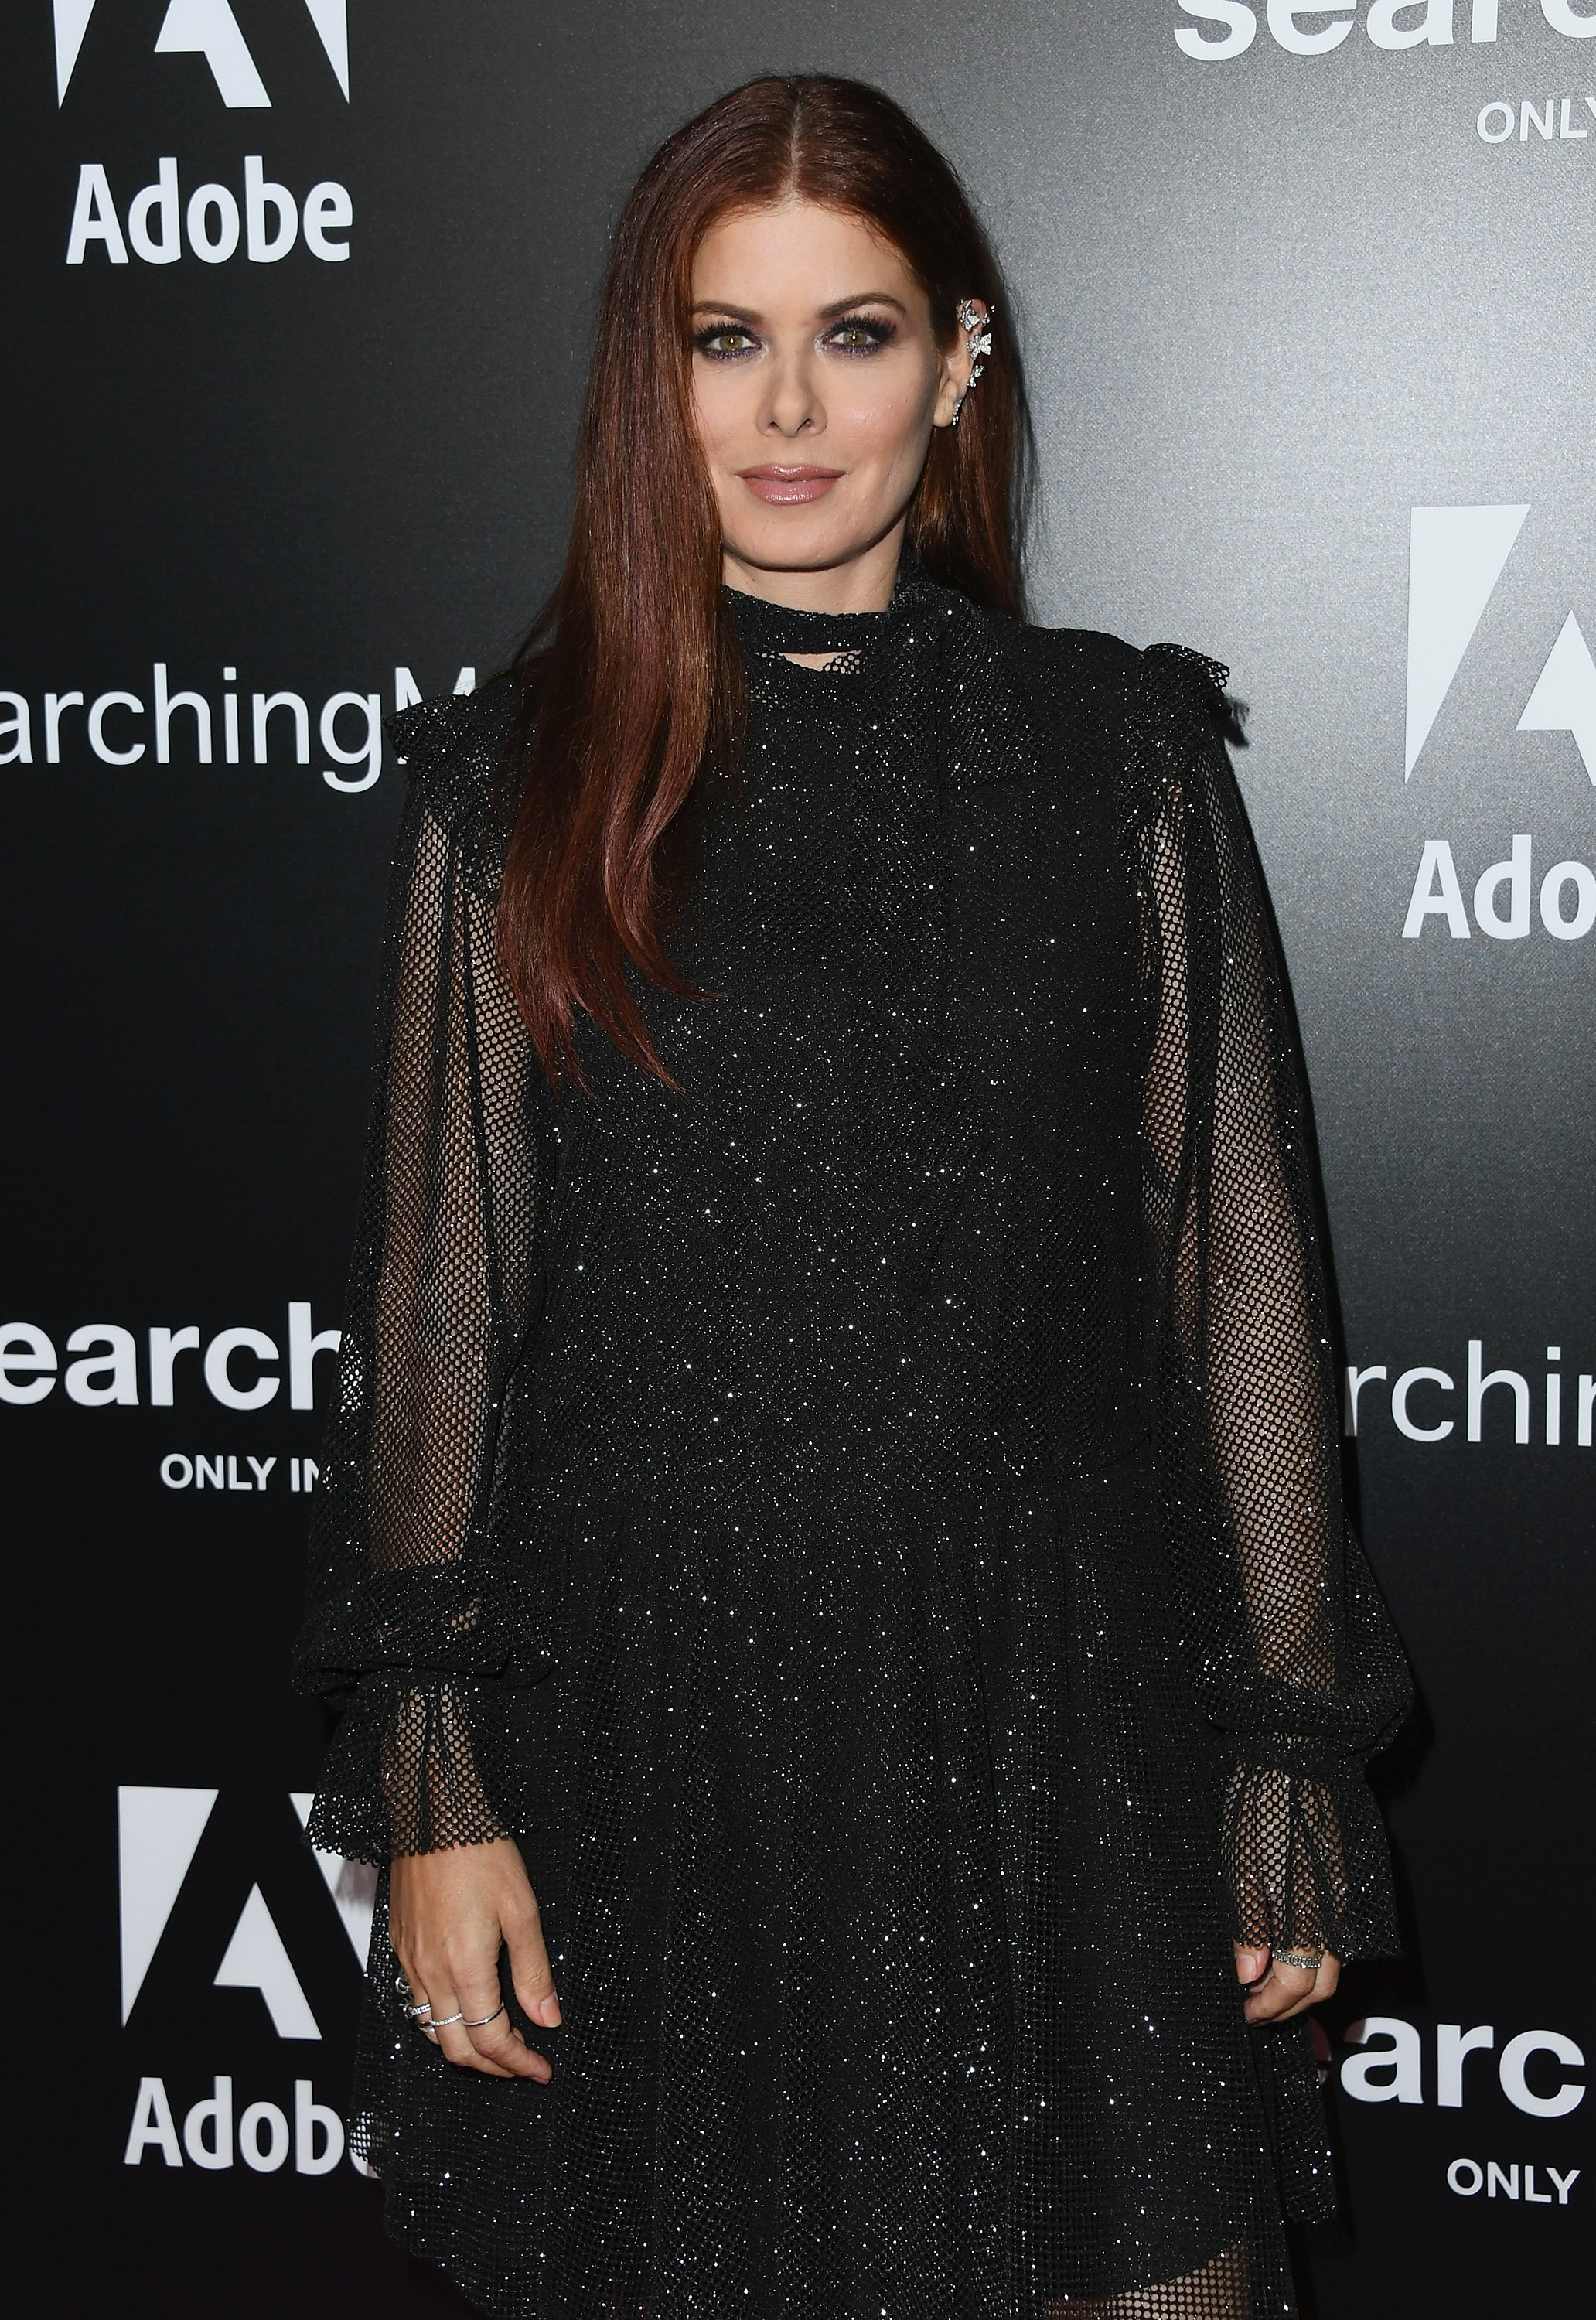 Image Source: Getty Images| A photo of Debra Messing